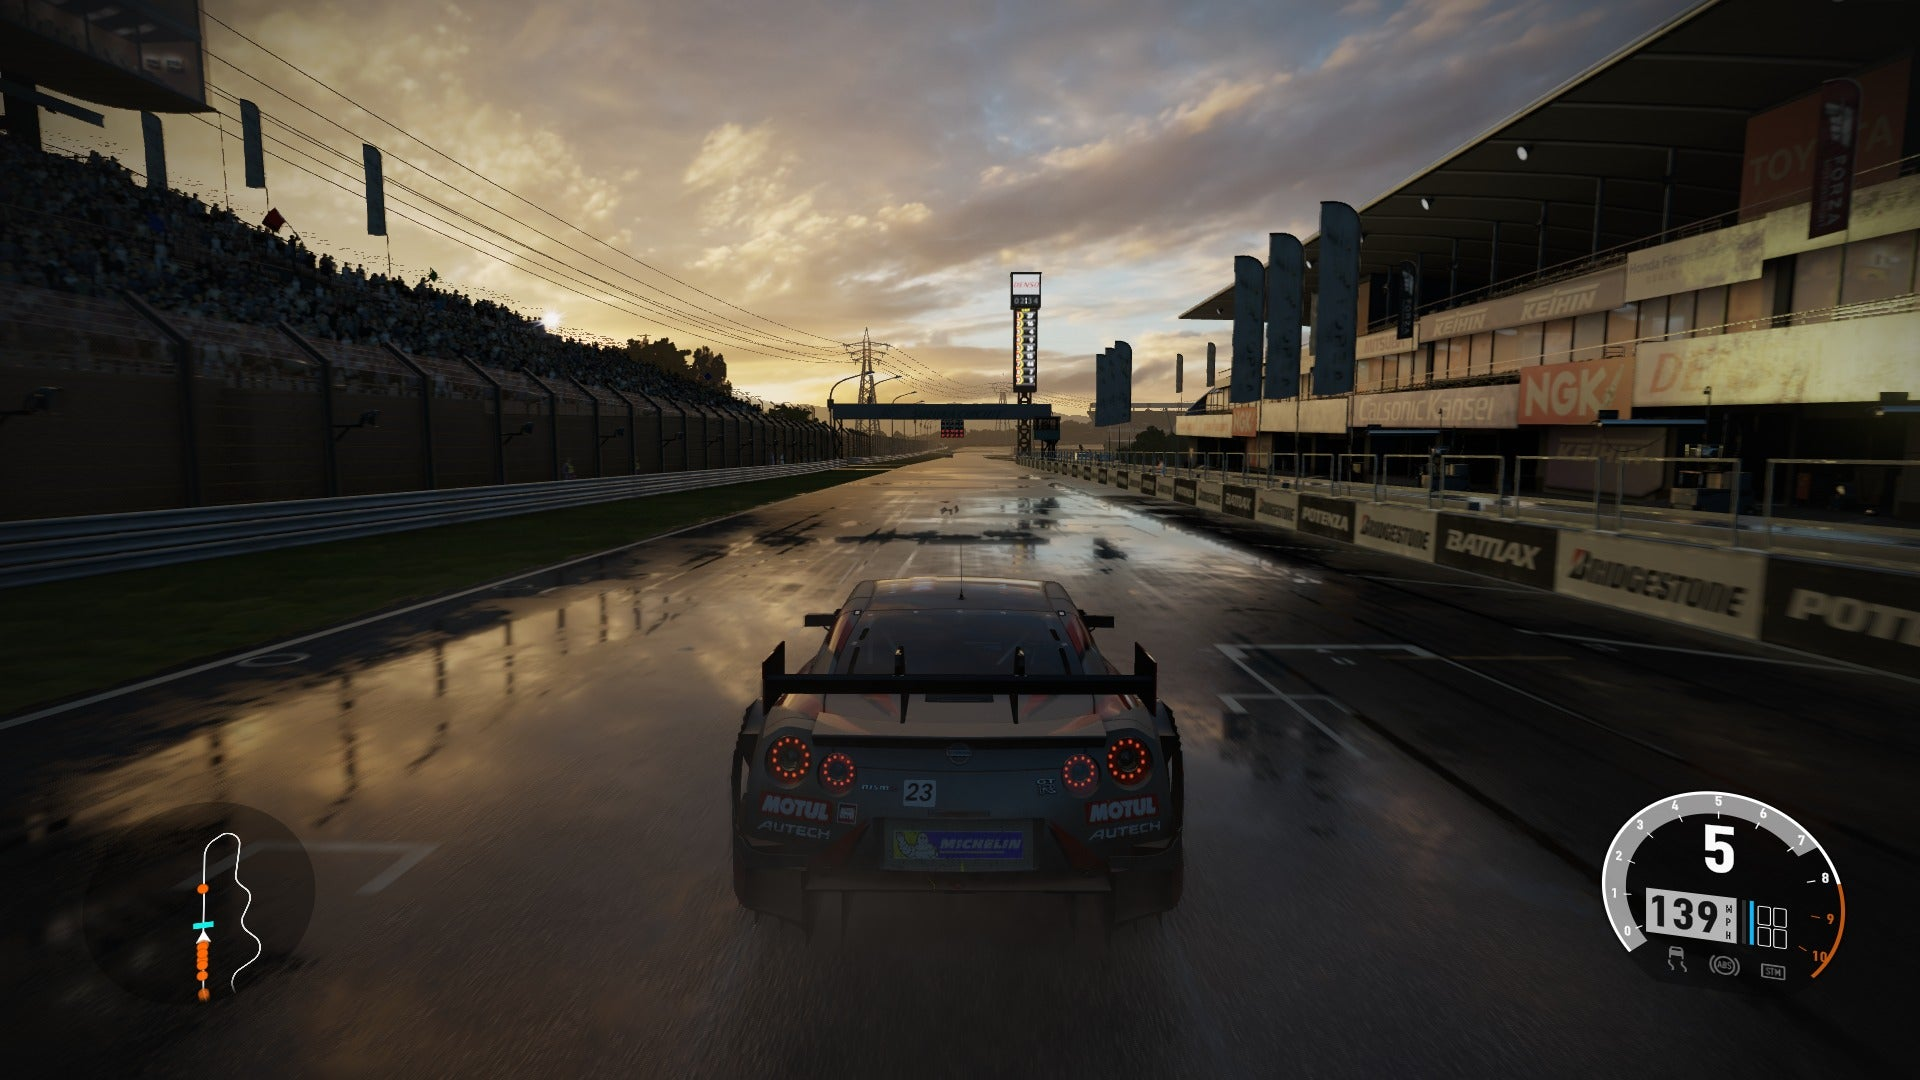 314f81bf600 Forza Motorsport 7 PC impressions: A solid lightweight racing sim sullied  by loot boxes